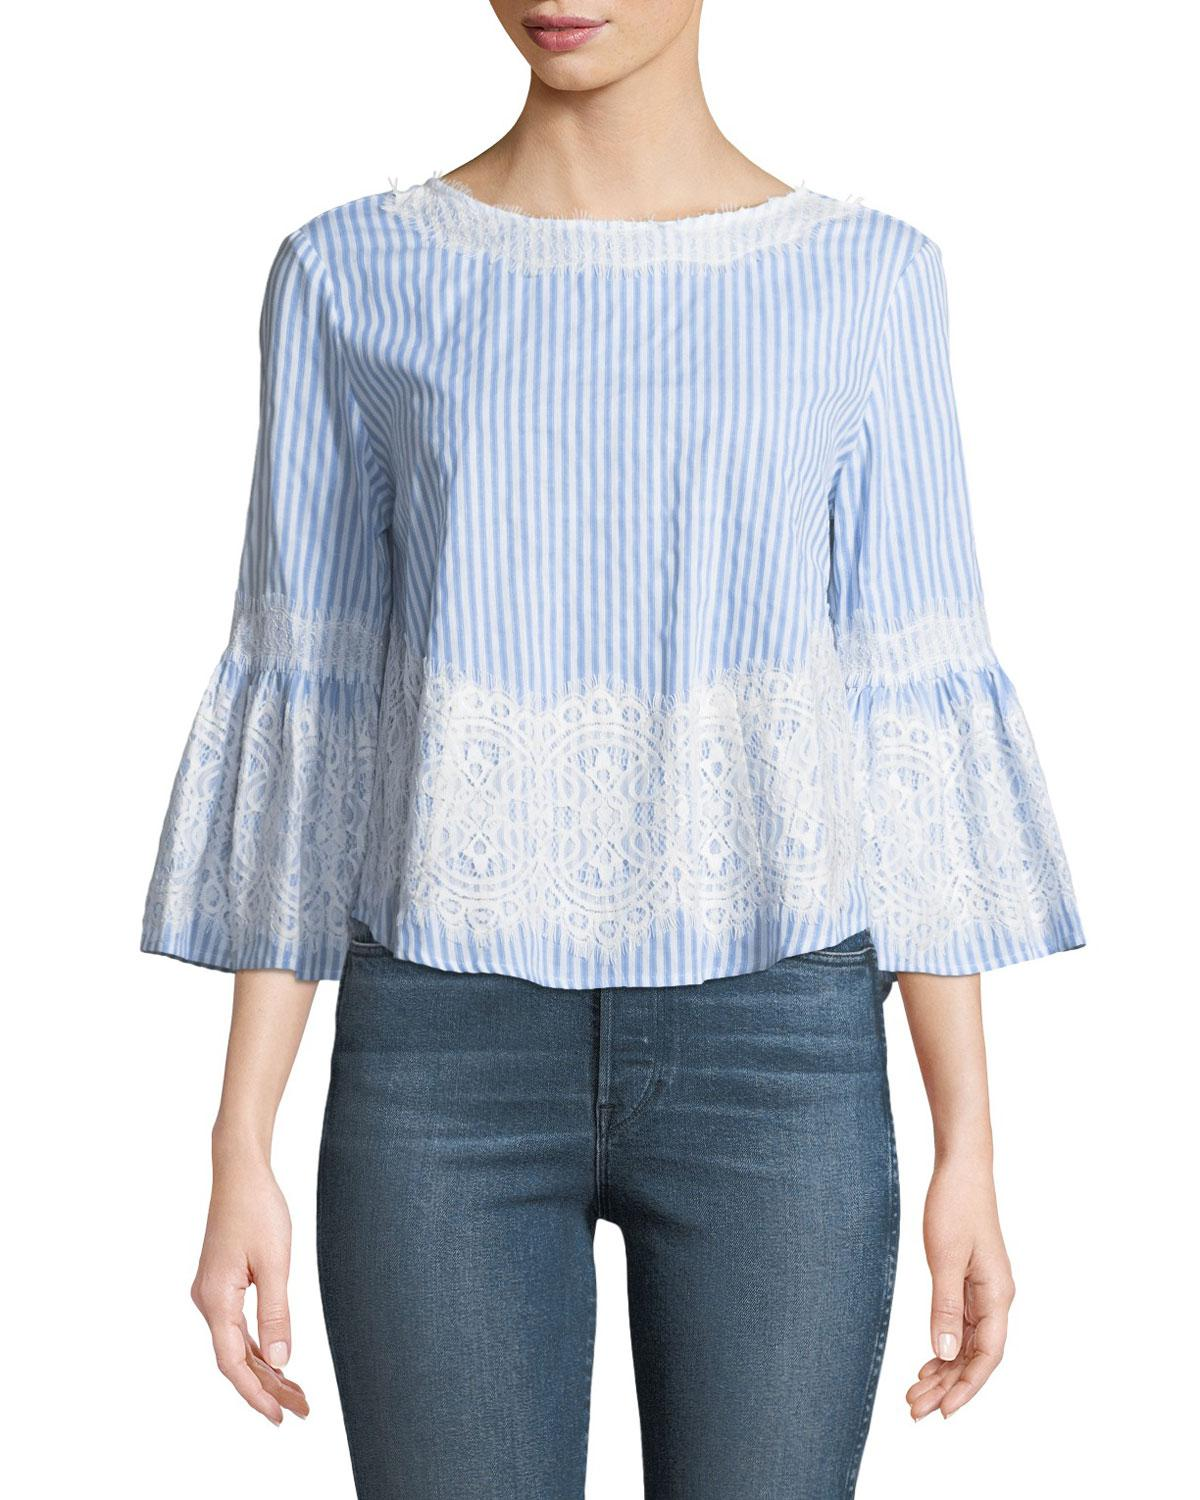 cabcd029be02b Lyst - Neiman Marcus Striped Lace-embroidered Blouse in Blue